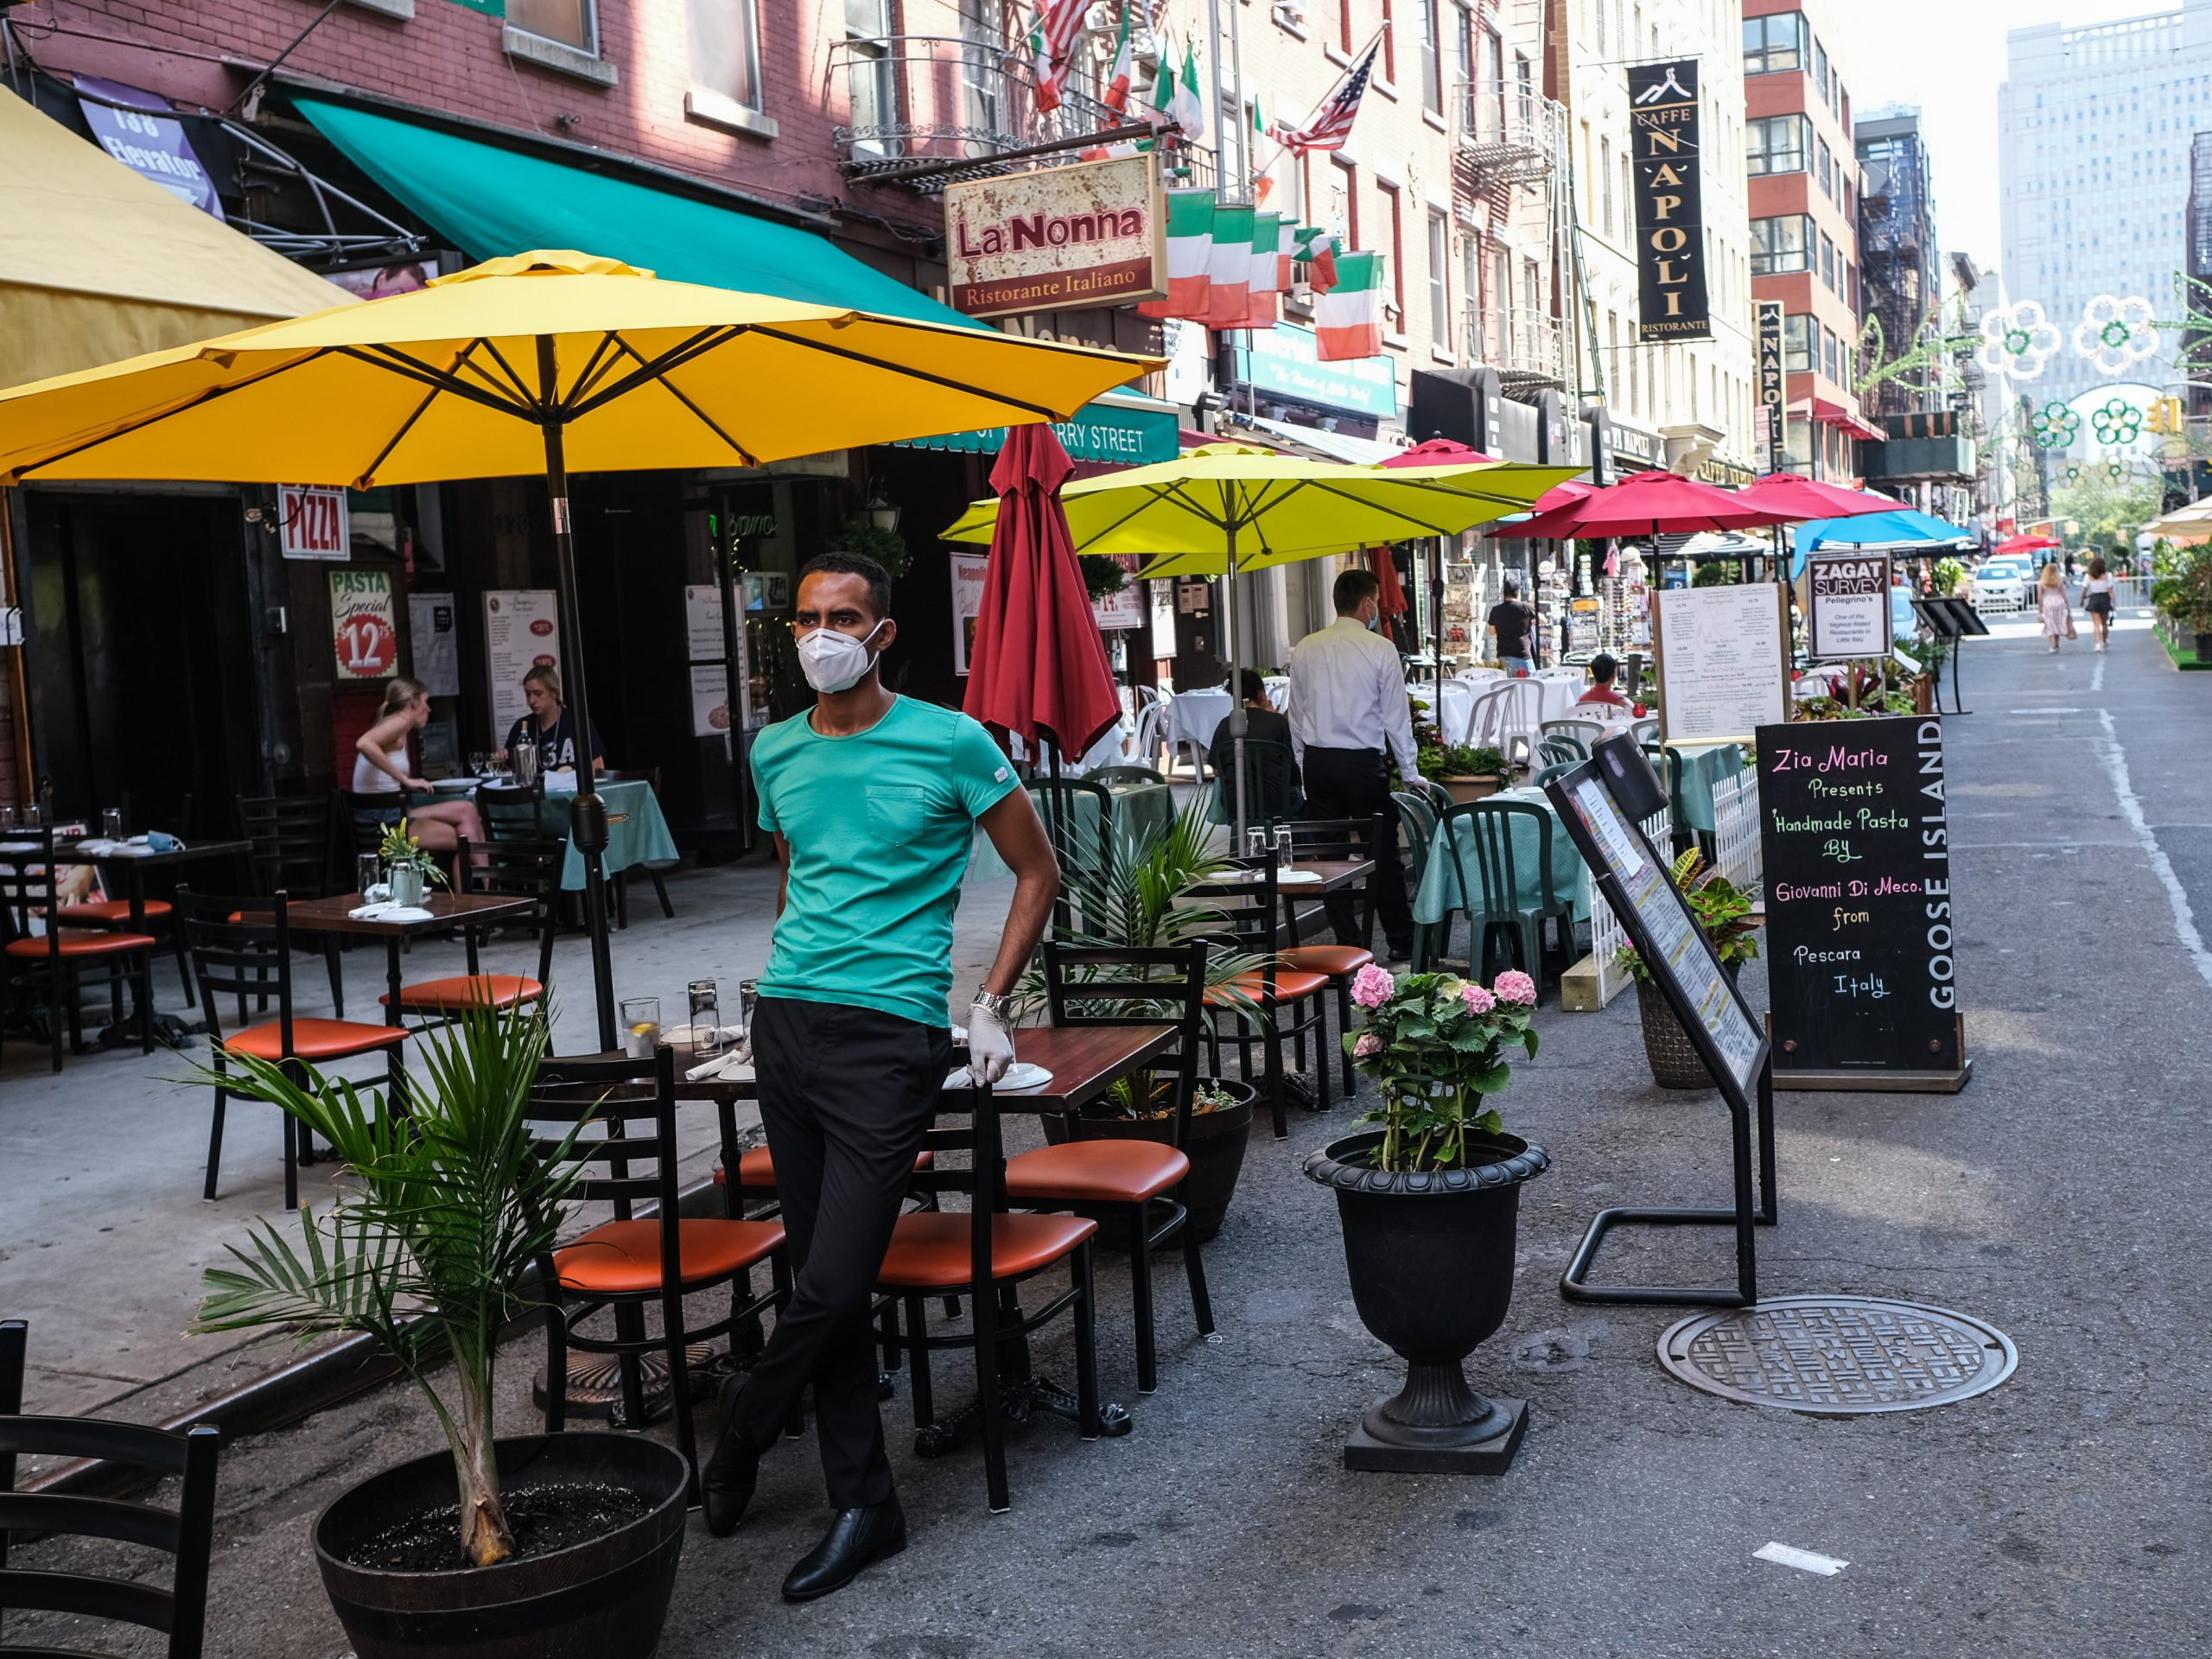 New York City had its first 24-hour period since March without a death from the coronavirus on Saturday. Here, people dine outdoors on July Fourth in Manhattan's Little Italy.